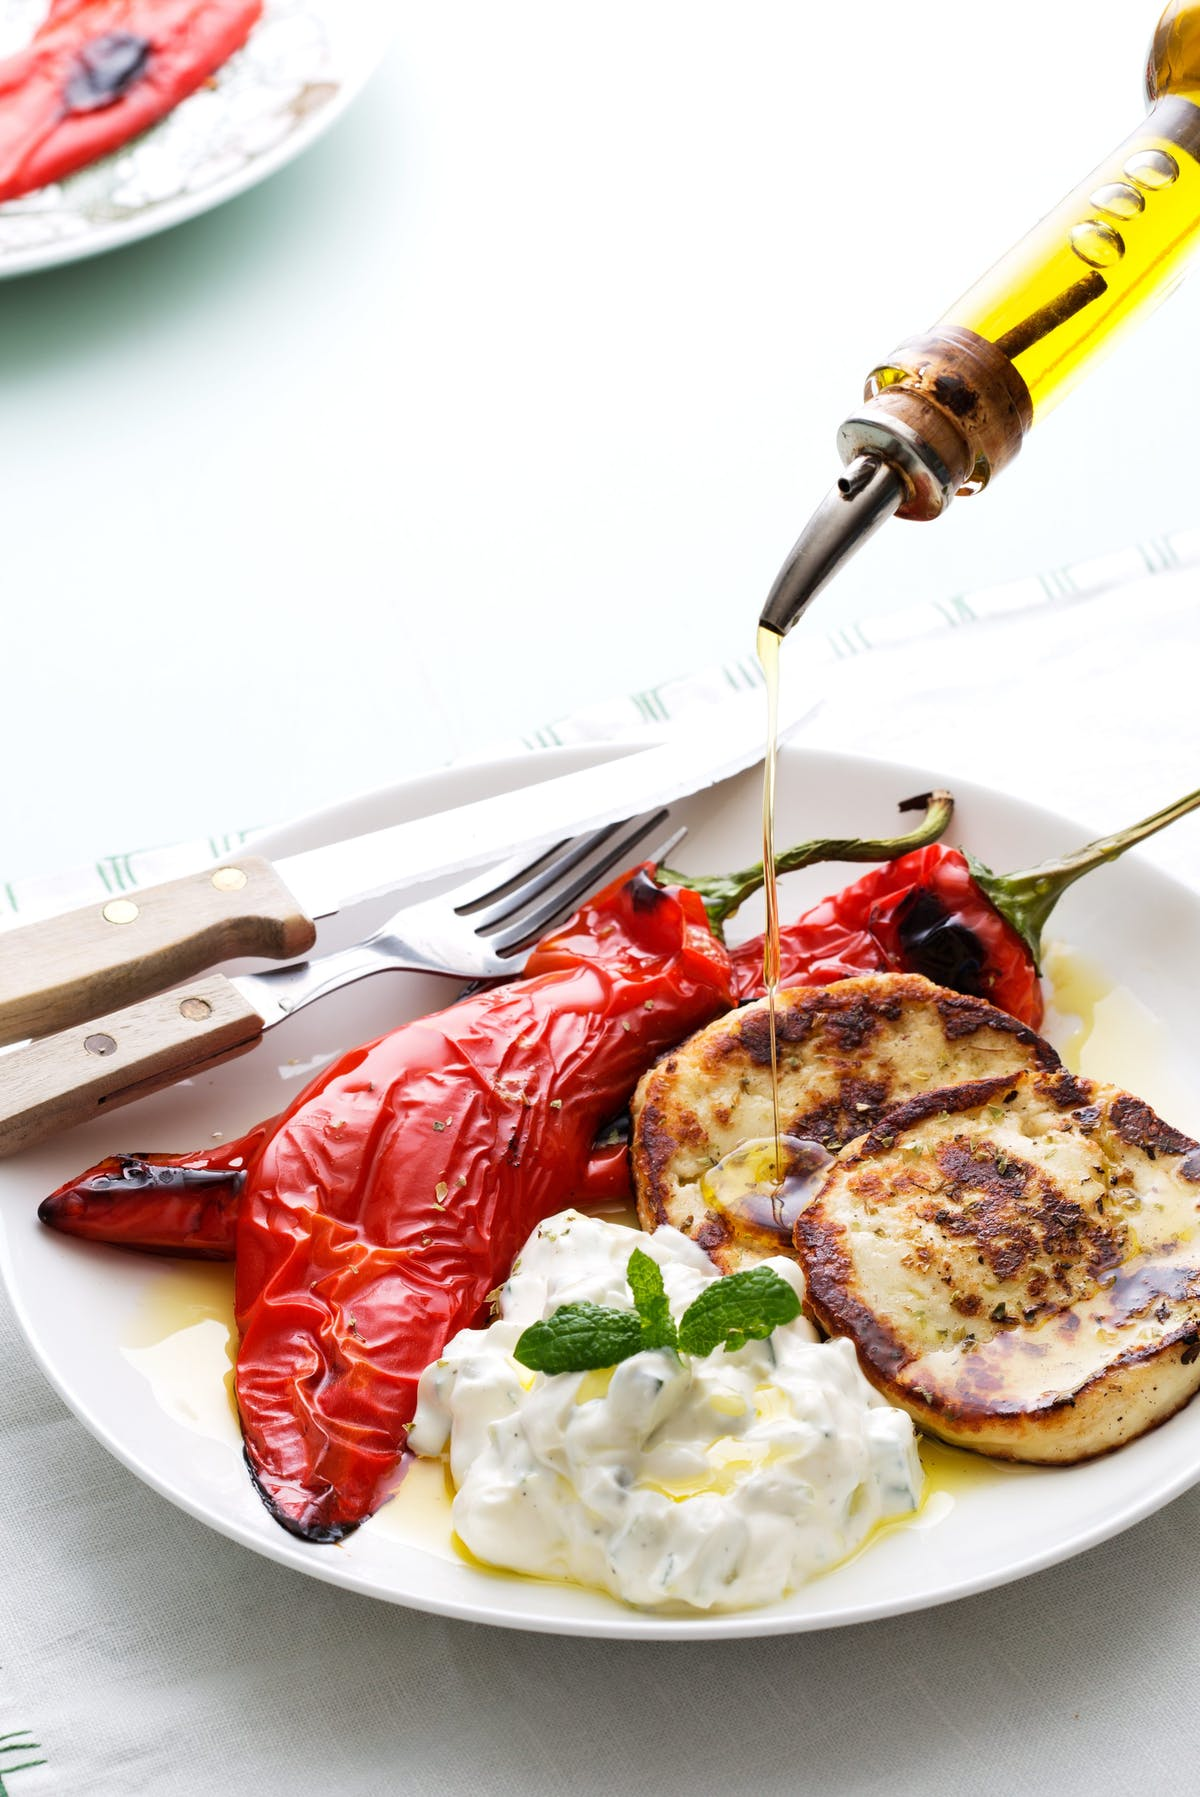 Fried halloumi with roasted peppers